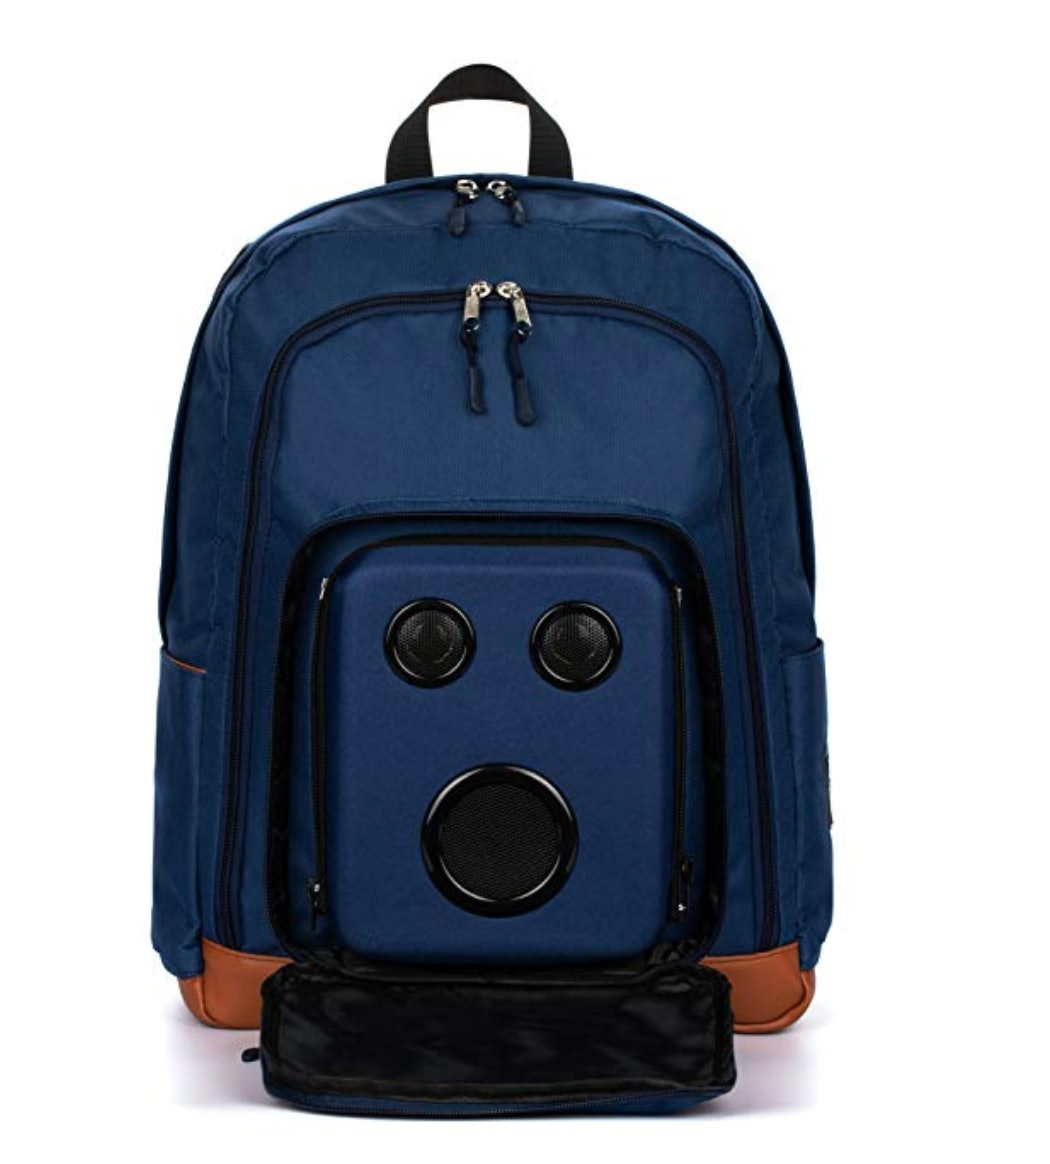 music, backpacks, technology, speakers, bluetooth, travel